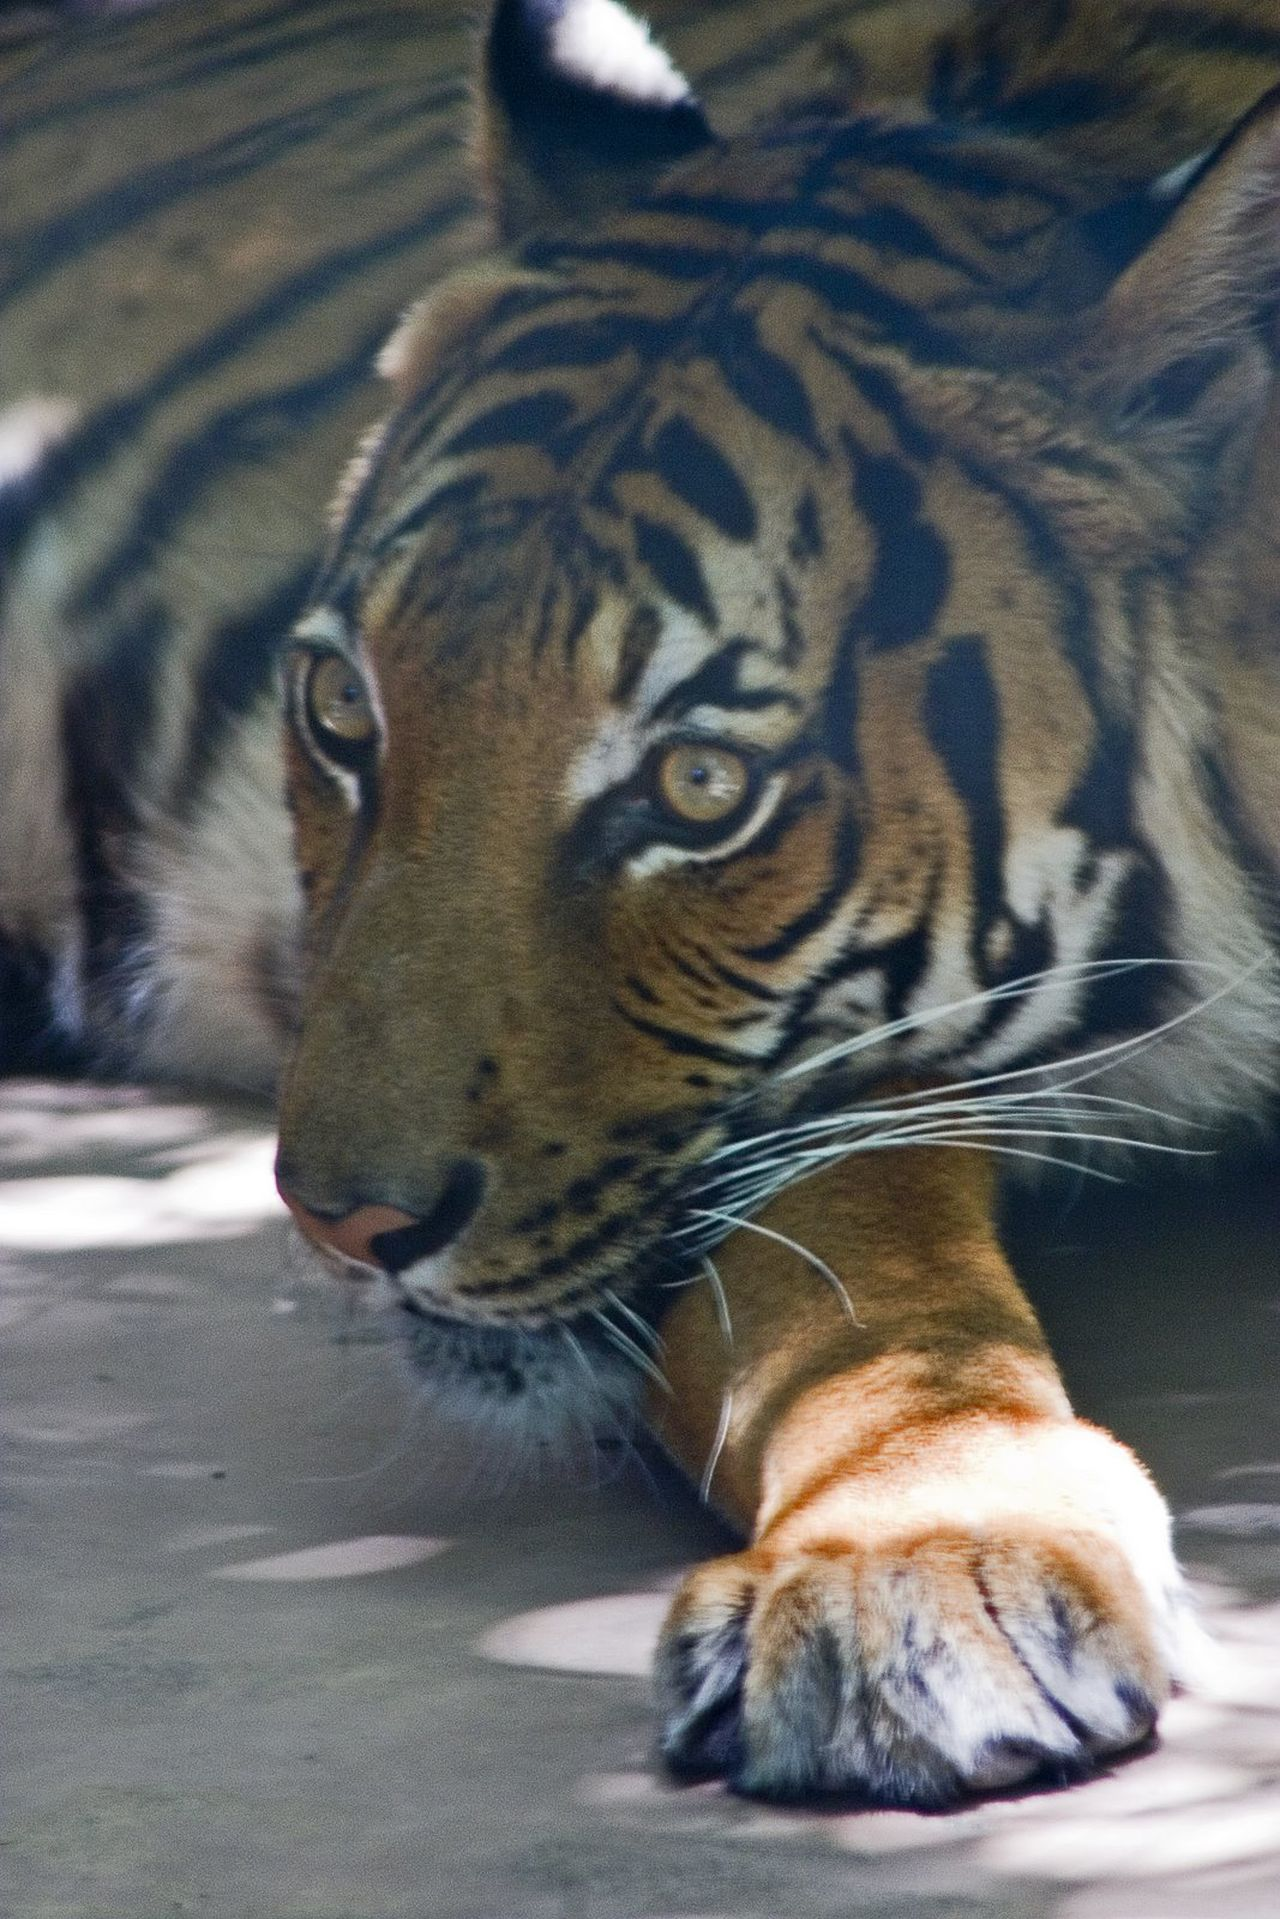 Animal Themes Animals In The Wild Close-up Day Domestic Animals Feline Leopard Mammal Nature No People One Animal Outdoors Portrait Tiger